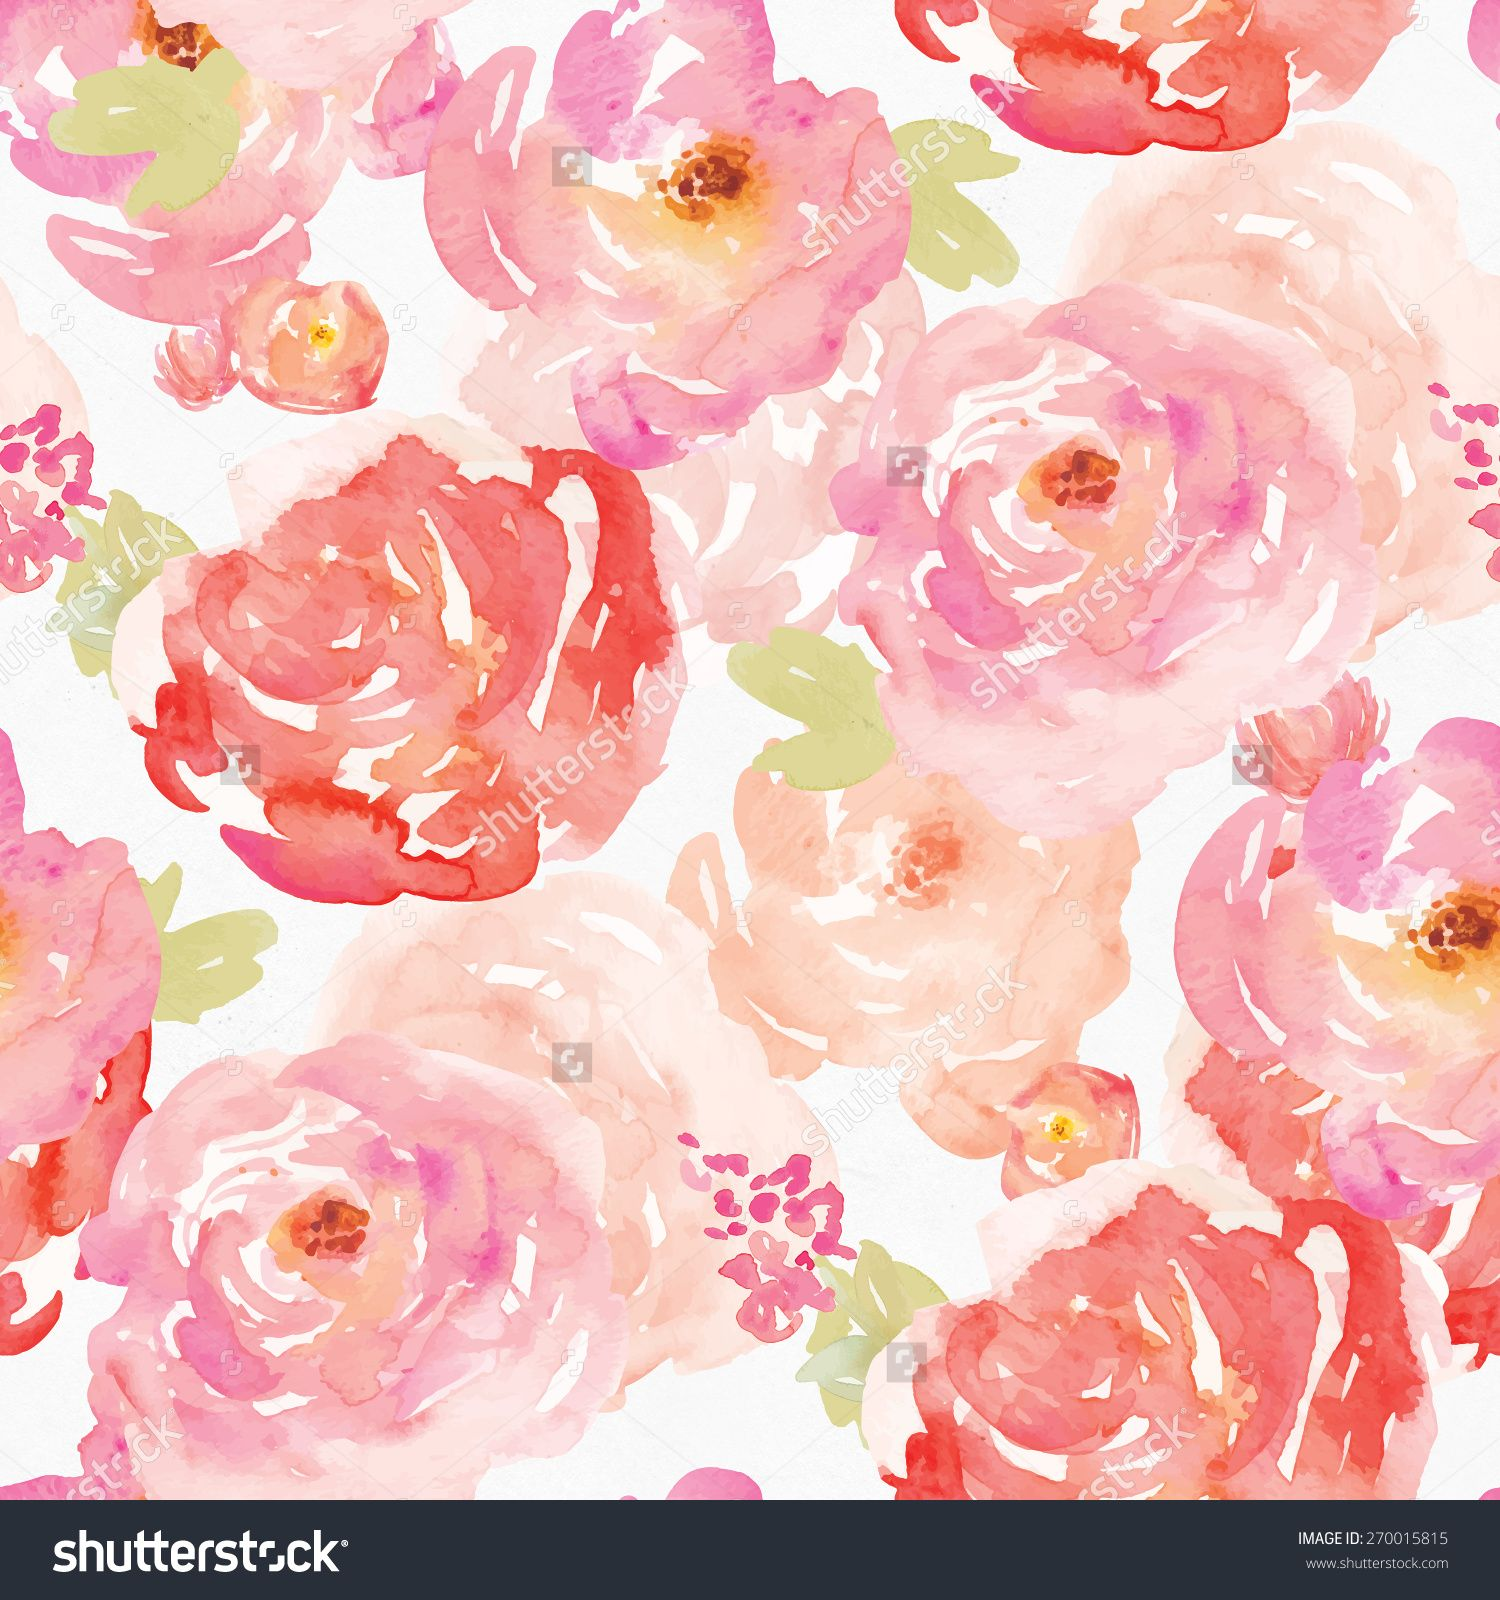 colorful floral background patterns - photo #34